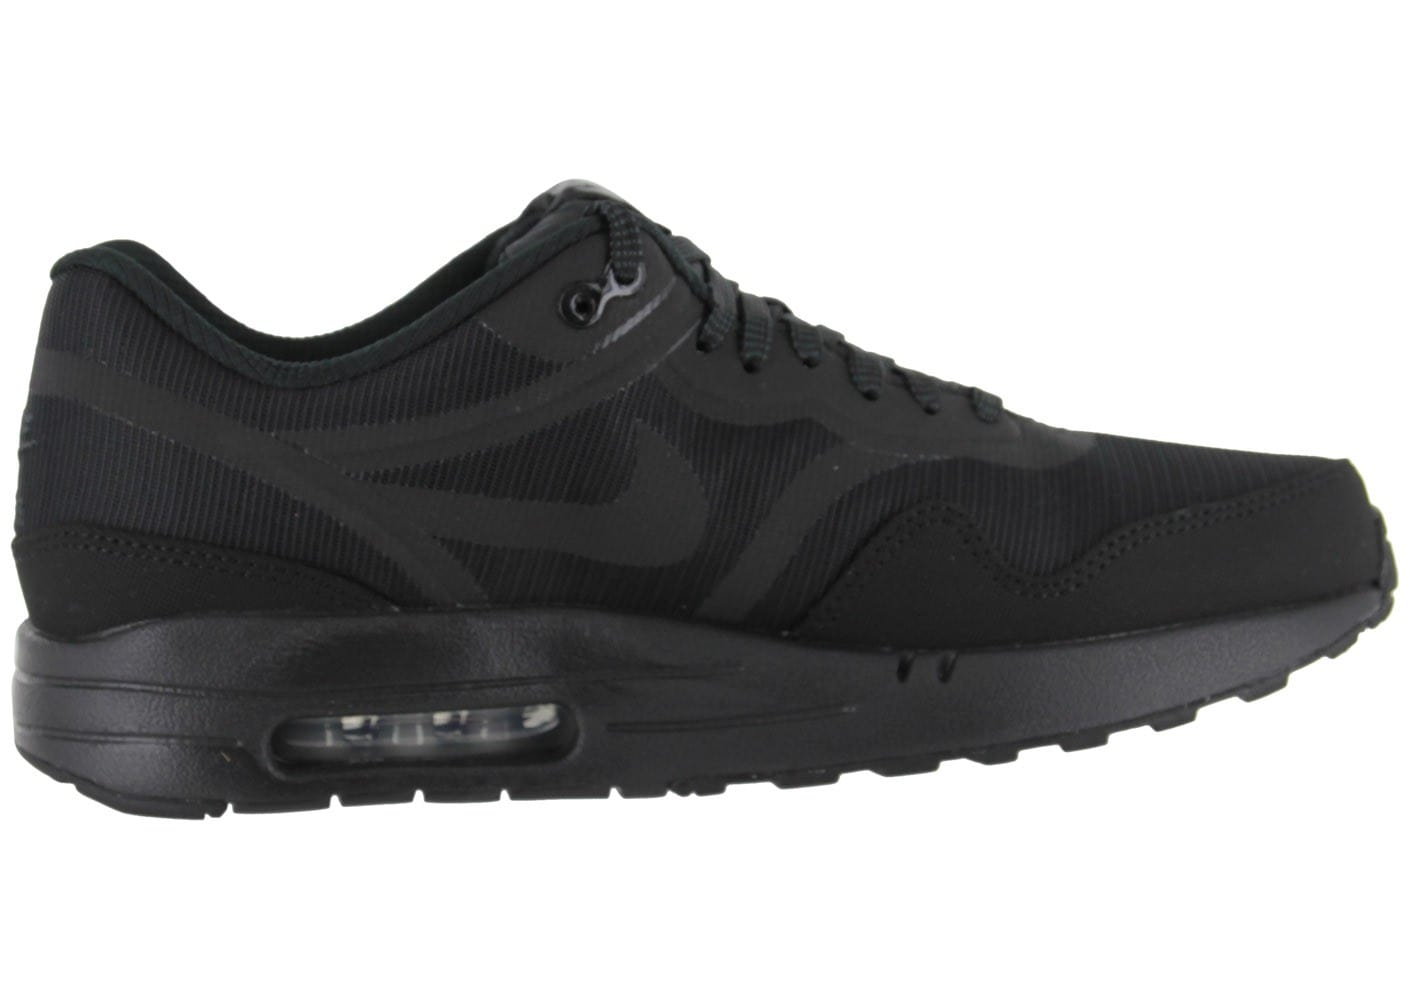 Nike Chaussures Prm Homme Tape Cmft Baskets 1 Air Max Black reEdoxBCQW